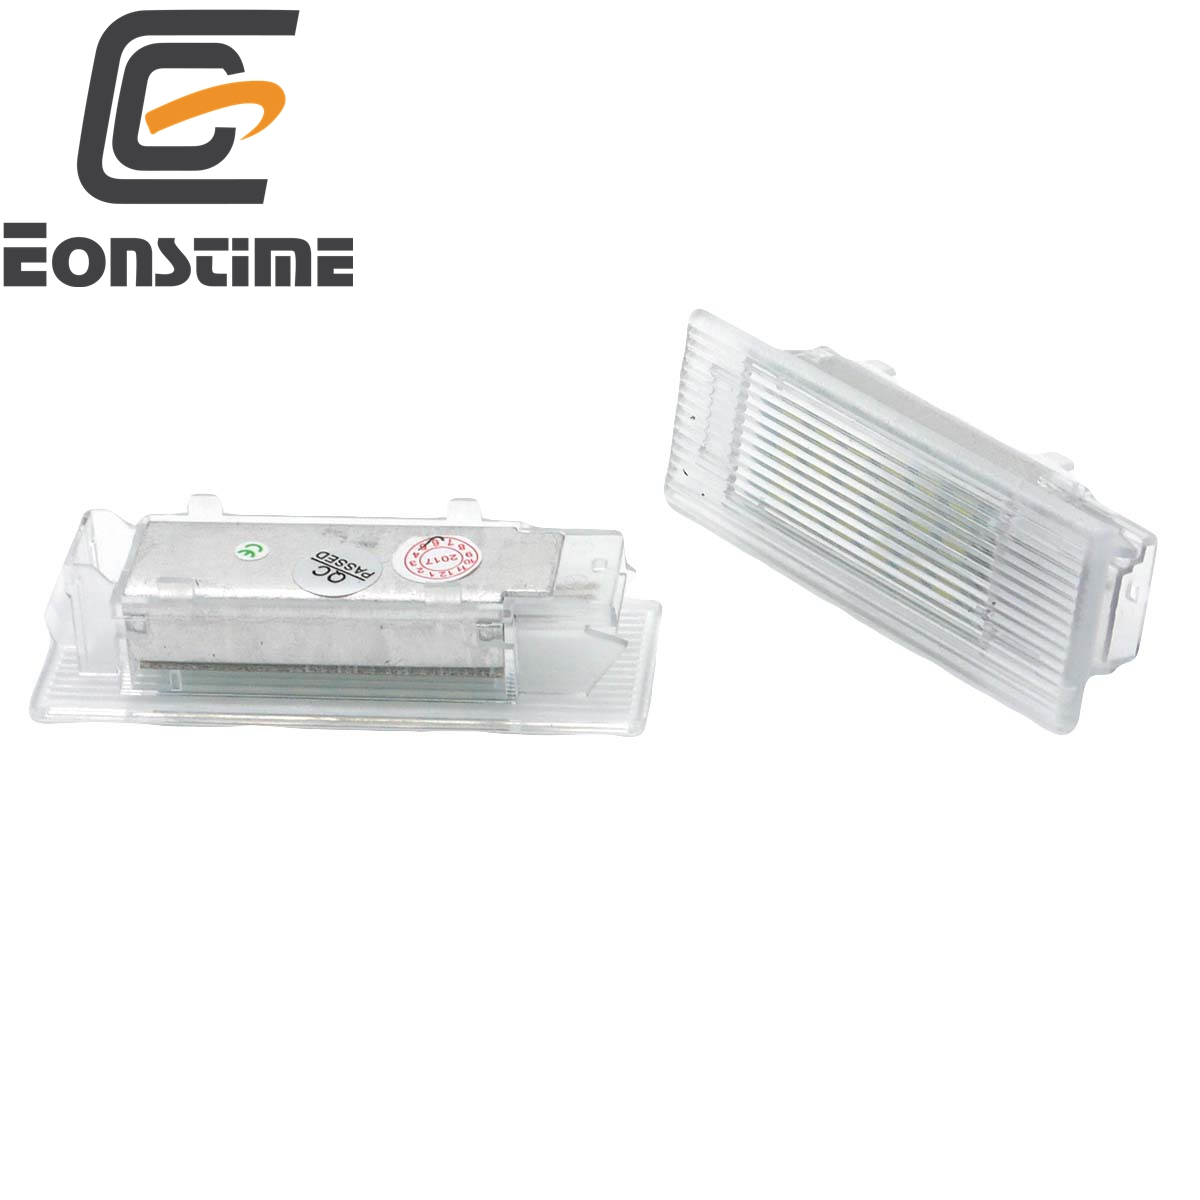 Eonstime 2Pcs 24SMD <font><b>LED</b></font> Courtesy Door Light Bulb Lamp For BMW 1 Series F20 F21 2014-up F30 <font><b>F31</b></font> F32 F34 X1 X4 X5 X6 E84 image